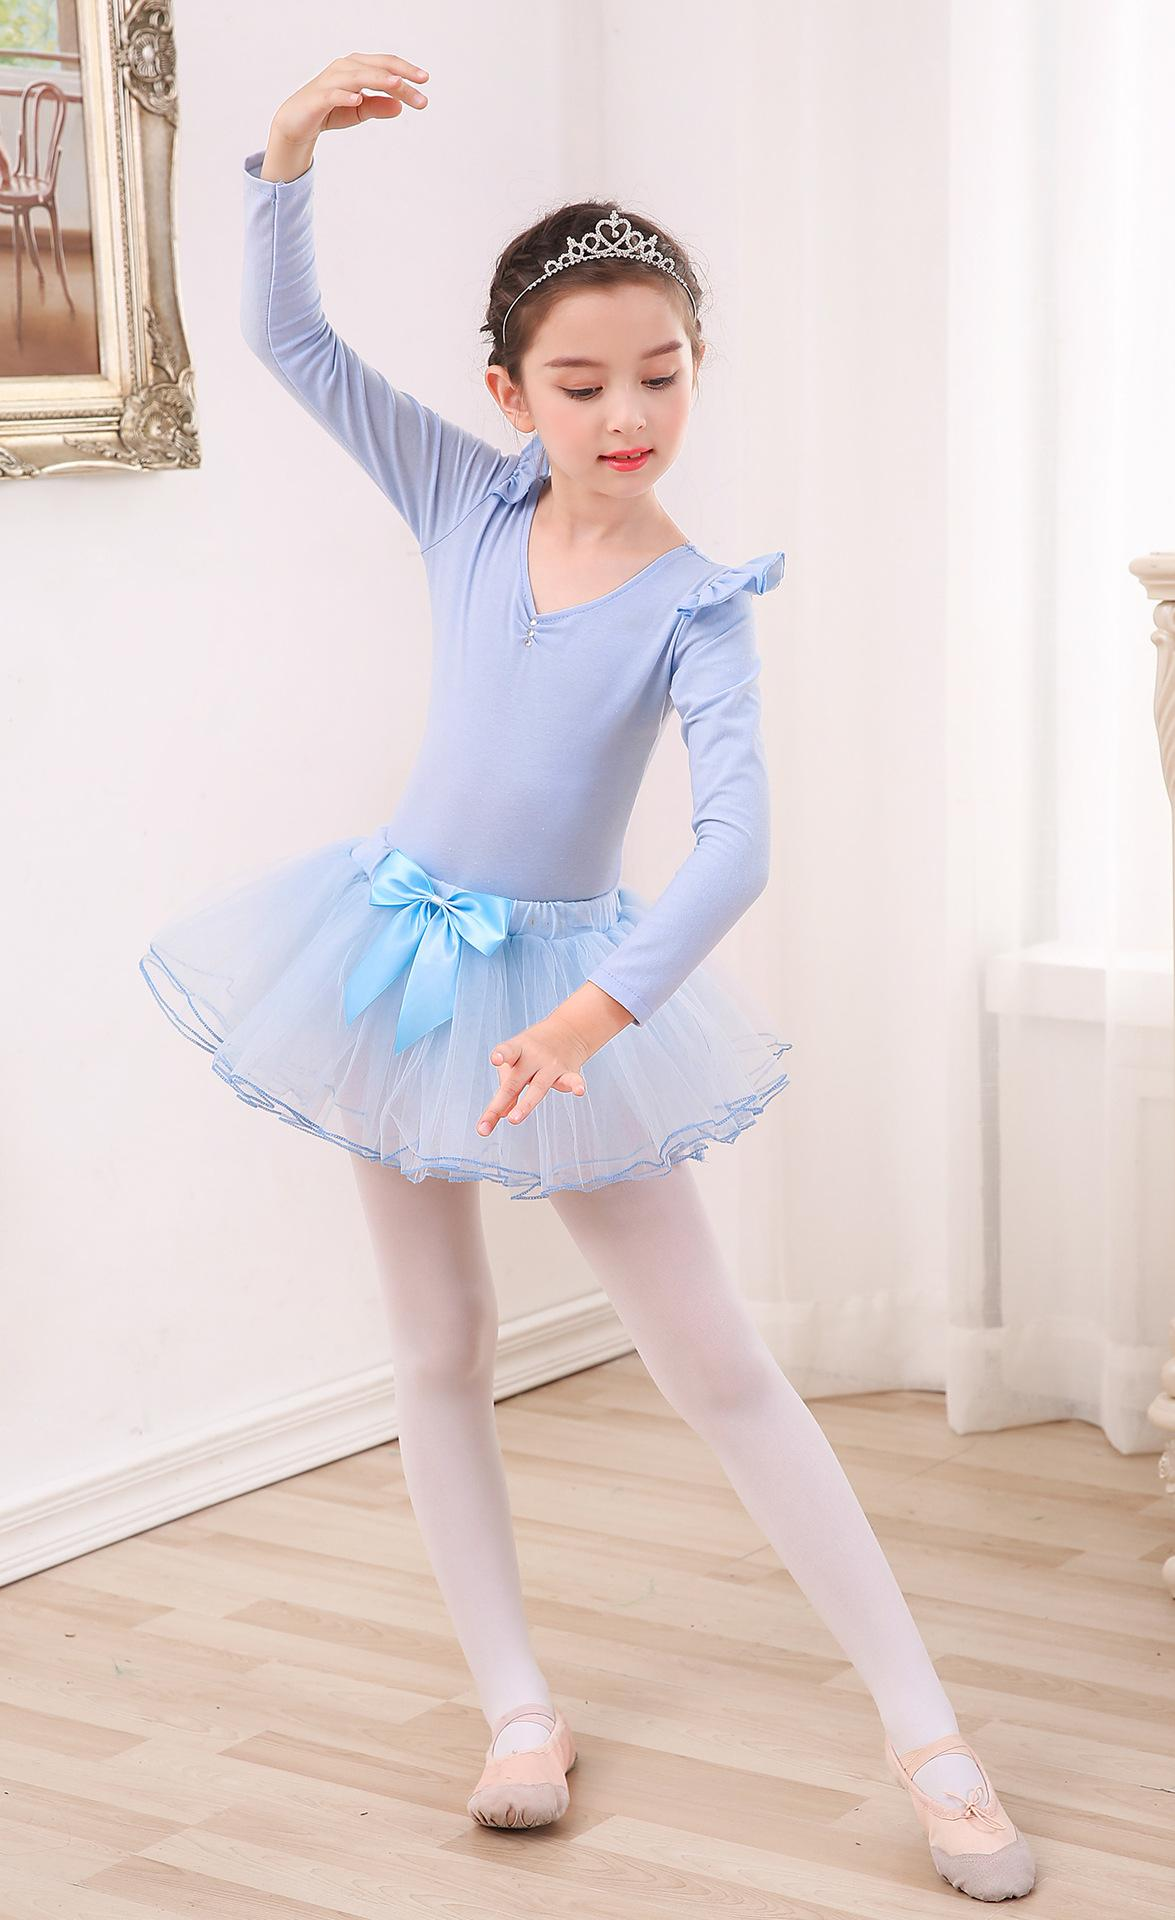 ballet tutu dancewear girl Kid Dance Sequin Shoes Print Pink White Red purple Black Leotard Ballet Tutu Dancewear dance costume party girls